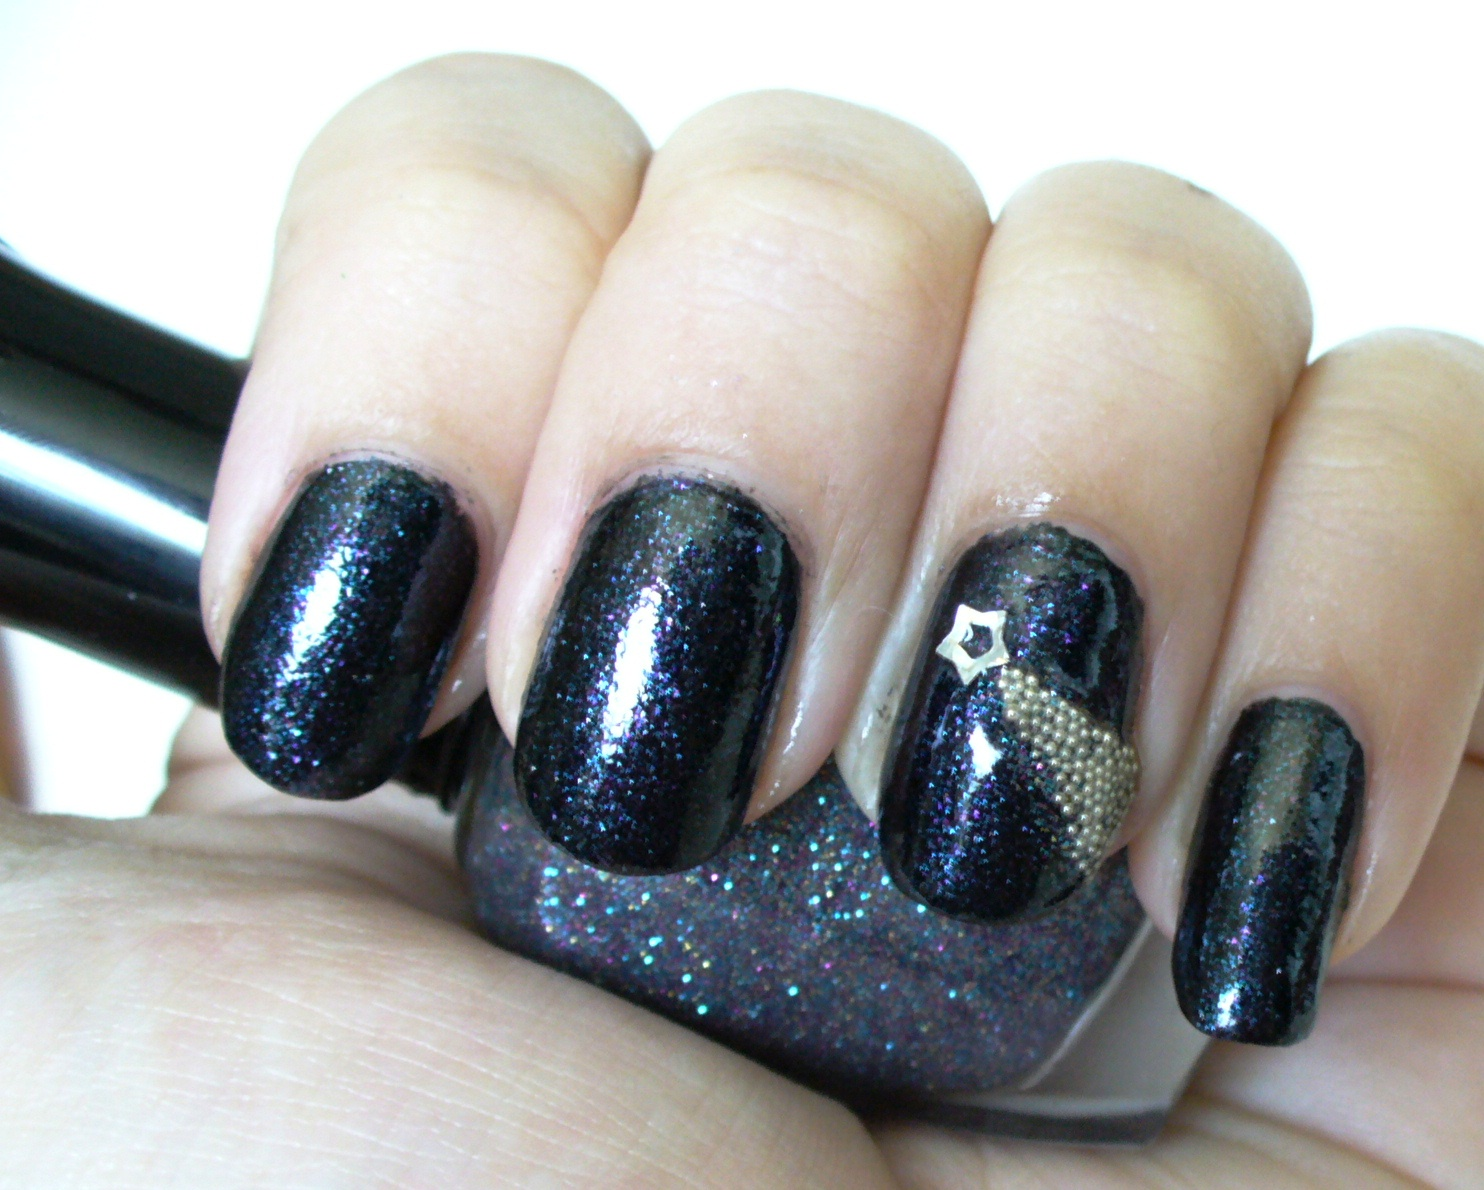 Shooting Star Nail Art with Micro/Caviar Beads - A Sparkly Life for Me